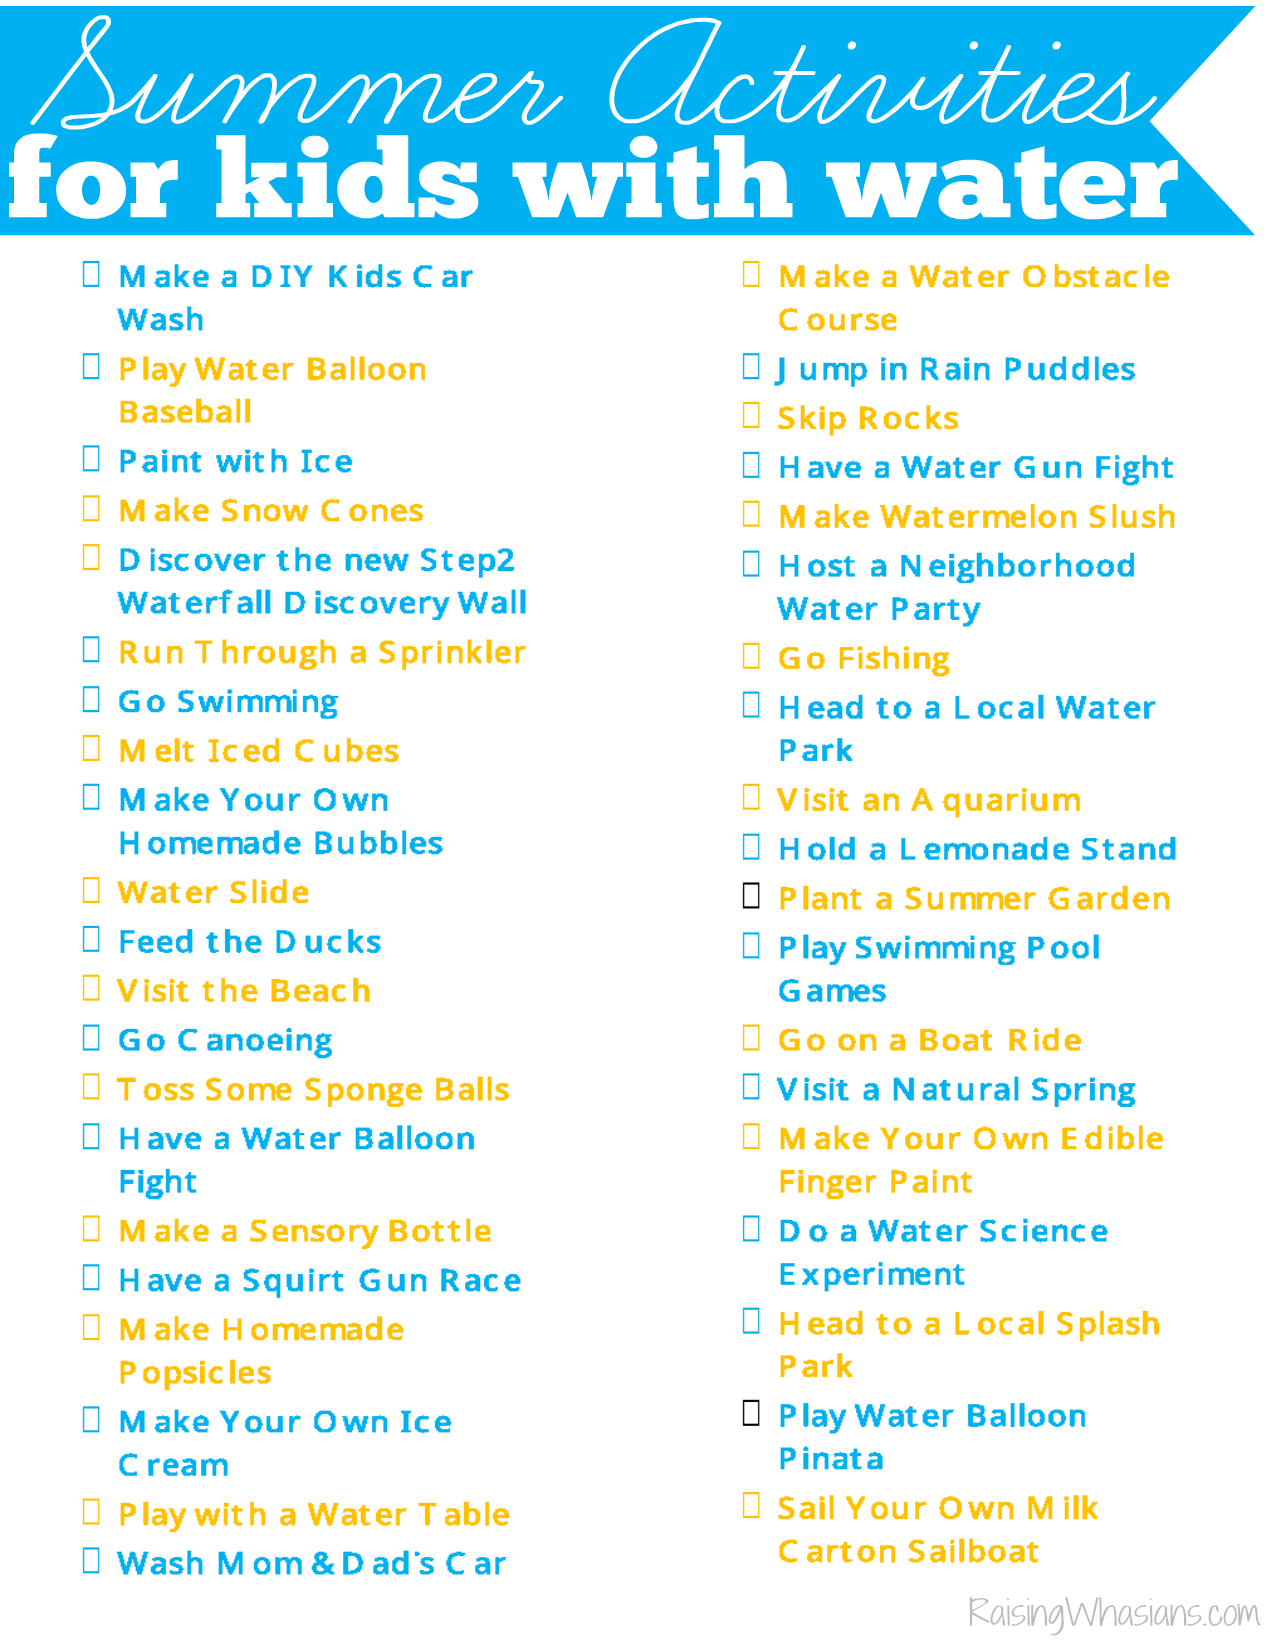 Summer activities for kids list printable